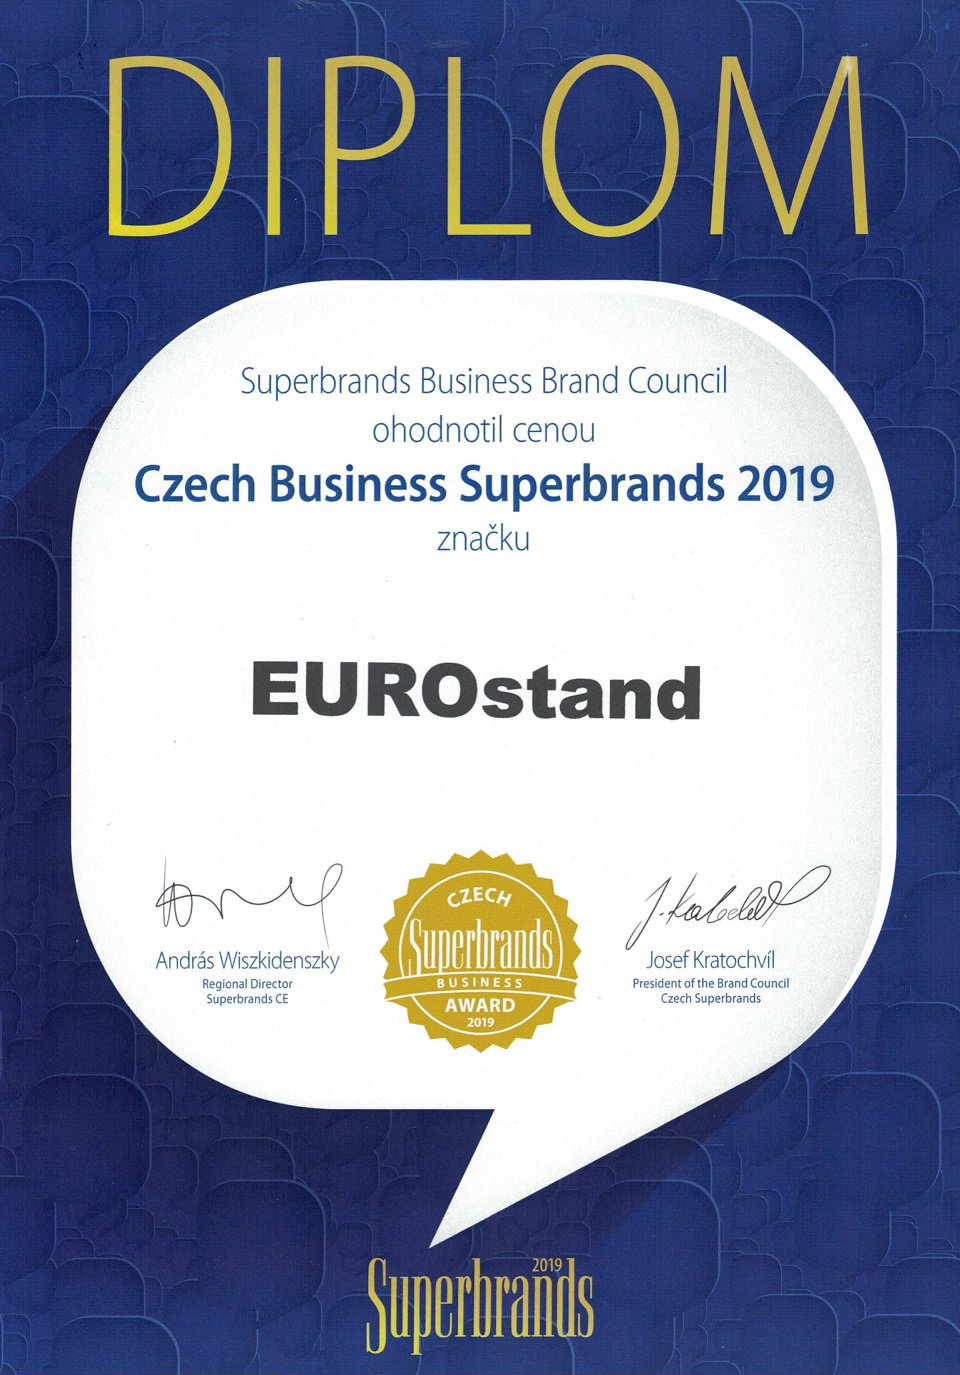 Business Superbrands Awards 2019